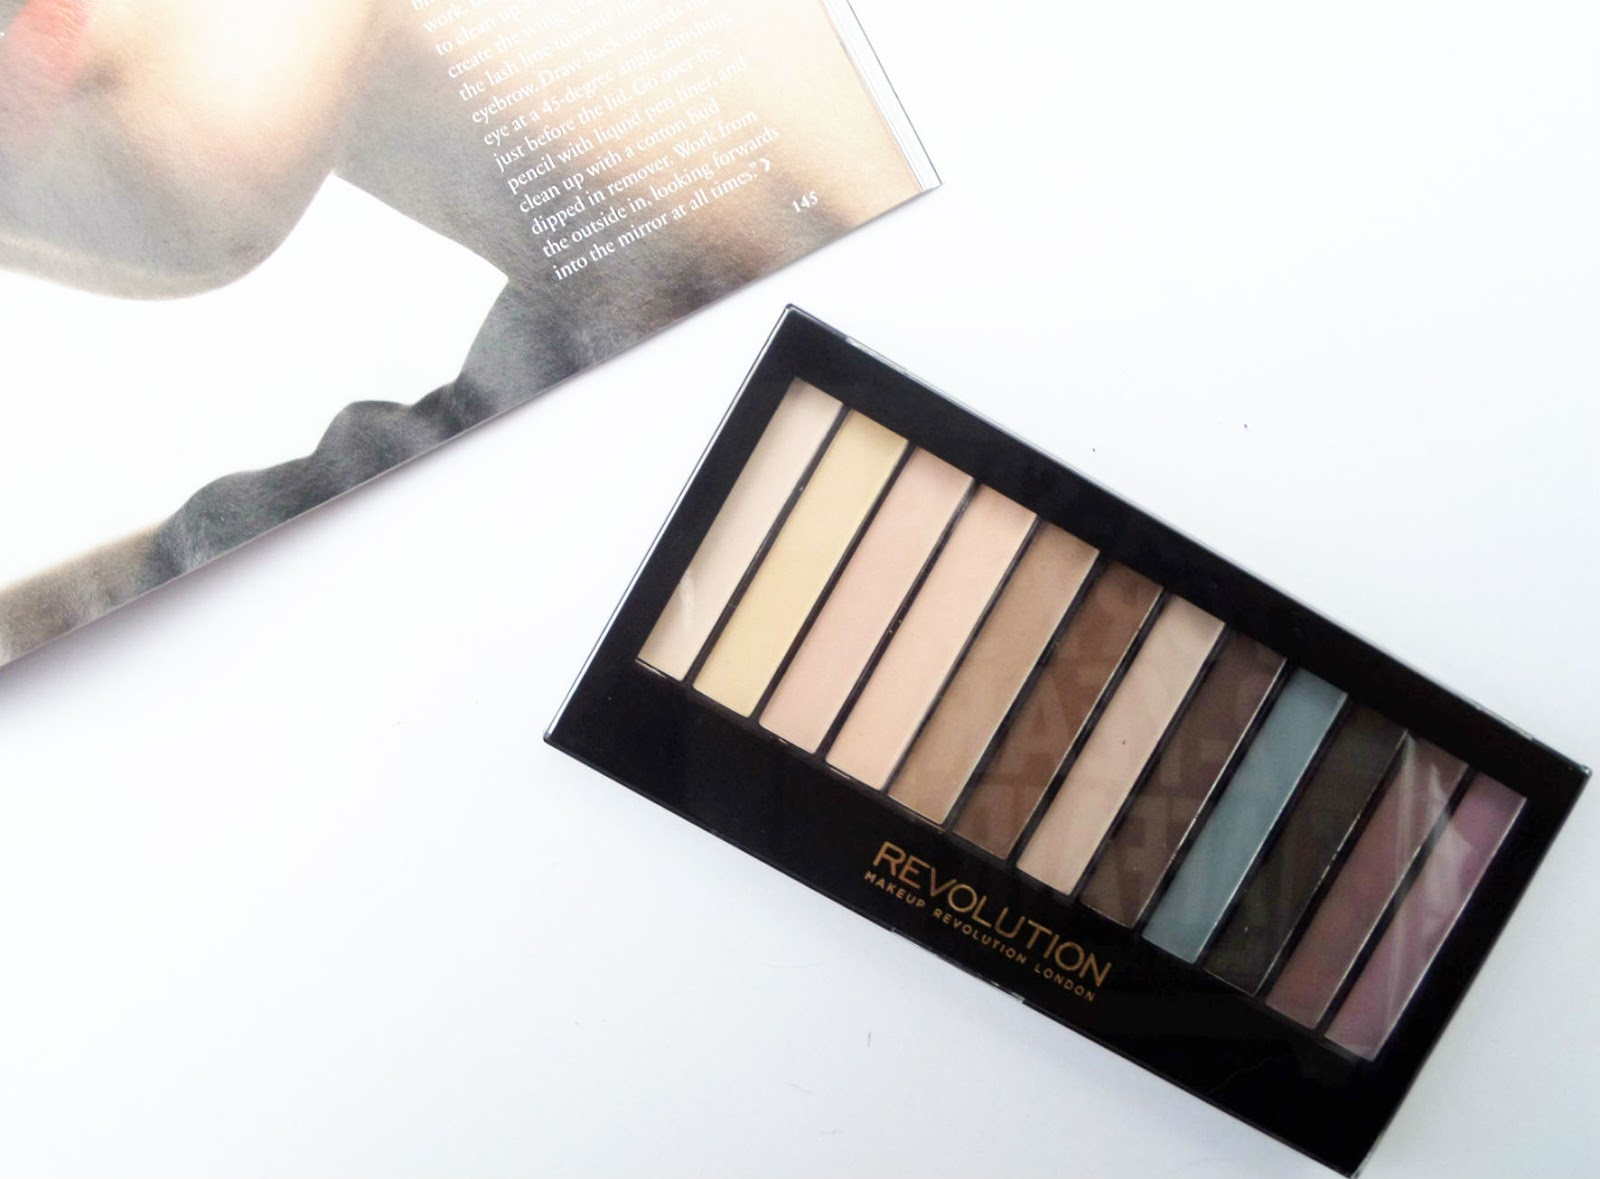 The Makeup Revolution Essential Mattes Palette Review